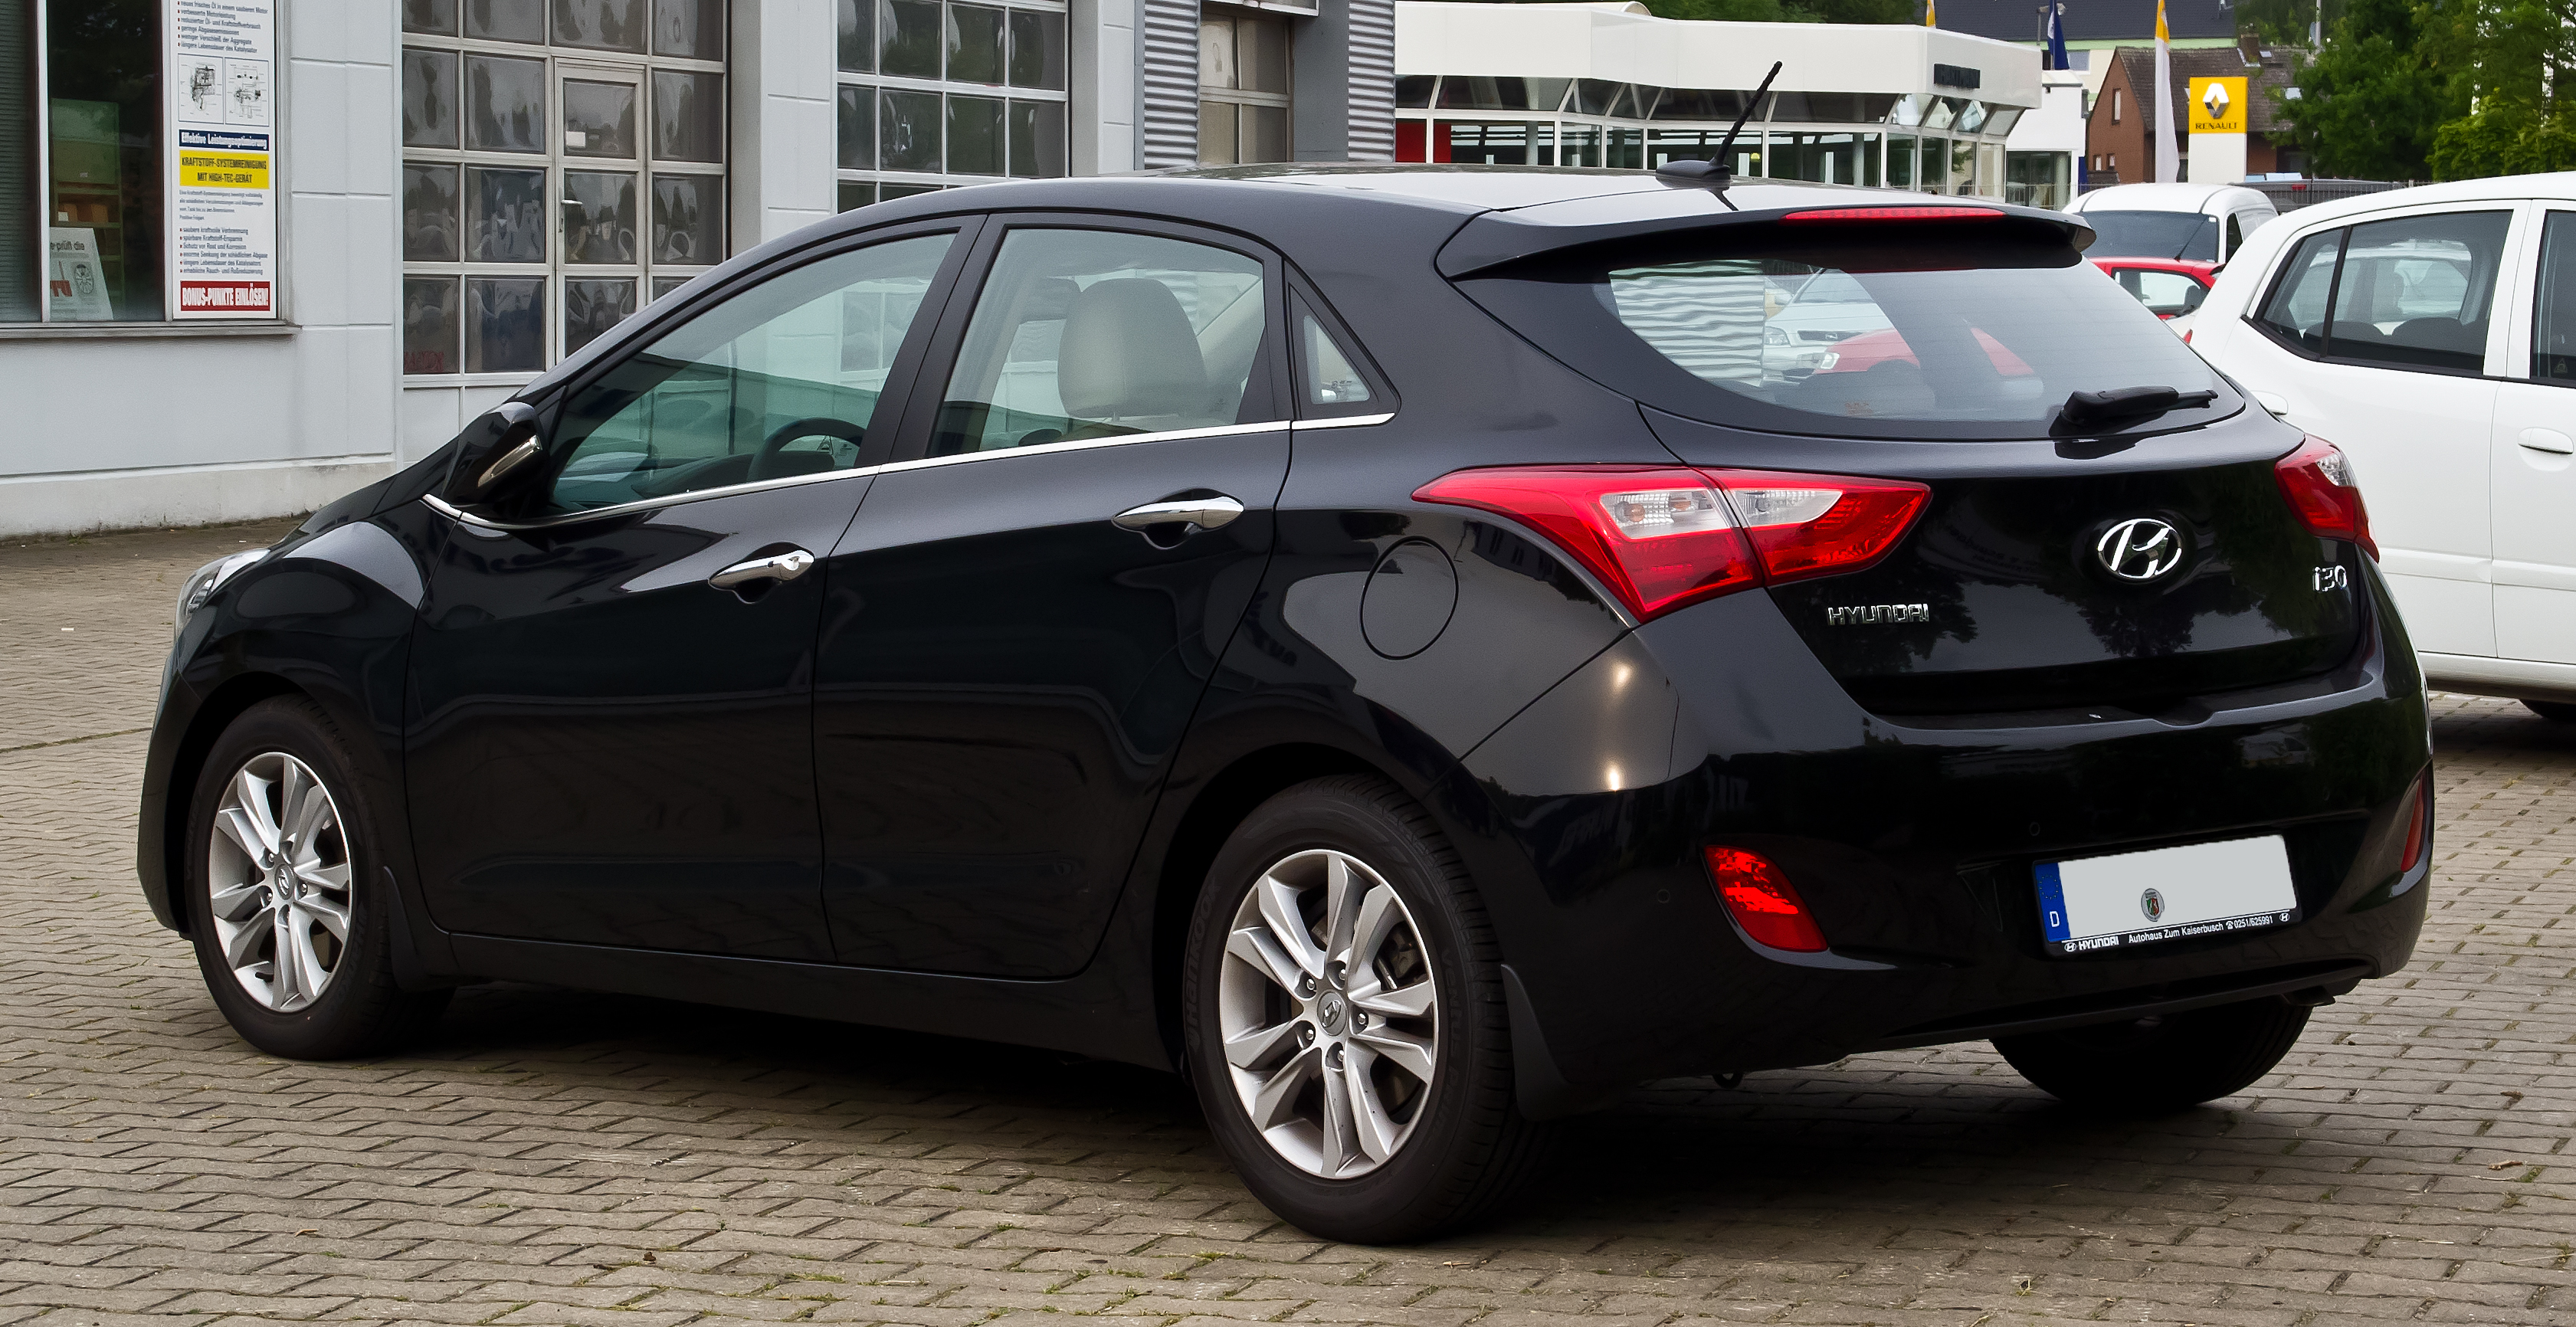 file hyundai i30 1 6 crdi style ii heckansicht 14 juli 2013 m wikimedia commons. Black Bedroom Furniture Sets. Home Design Ideas